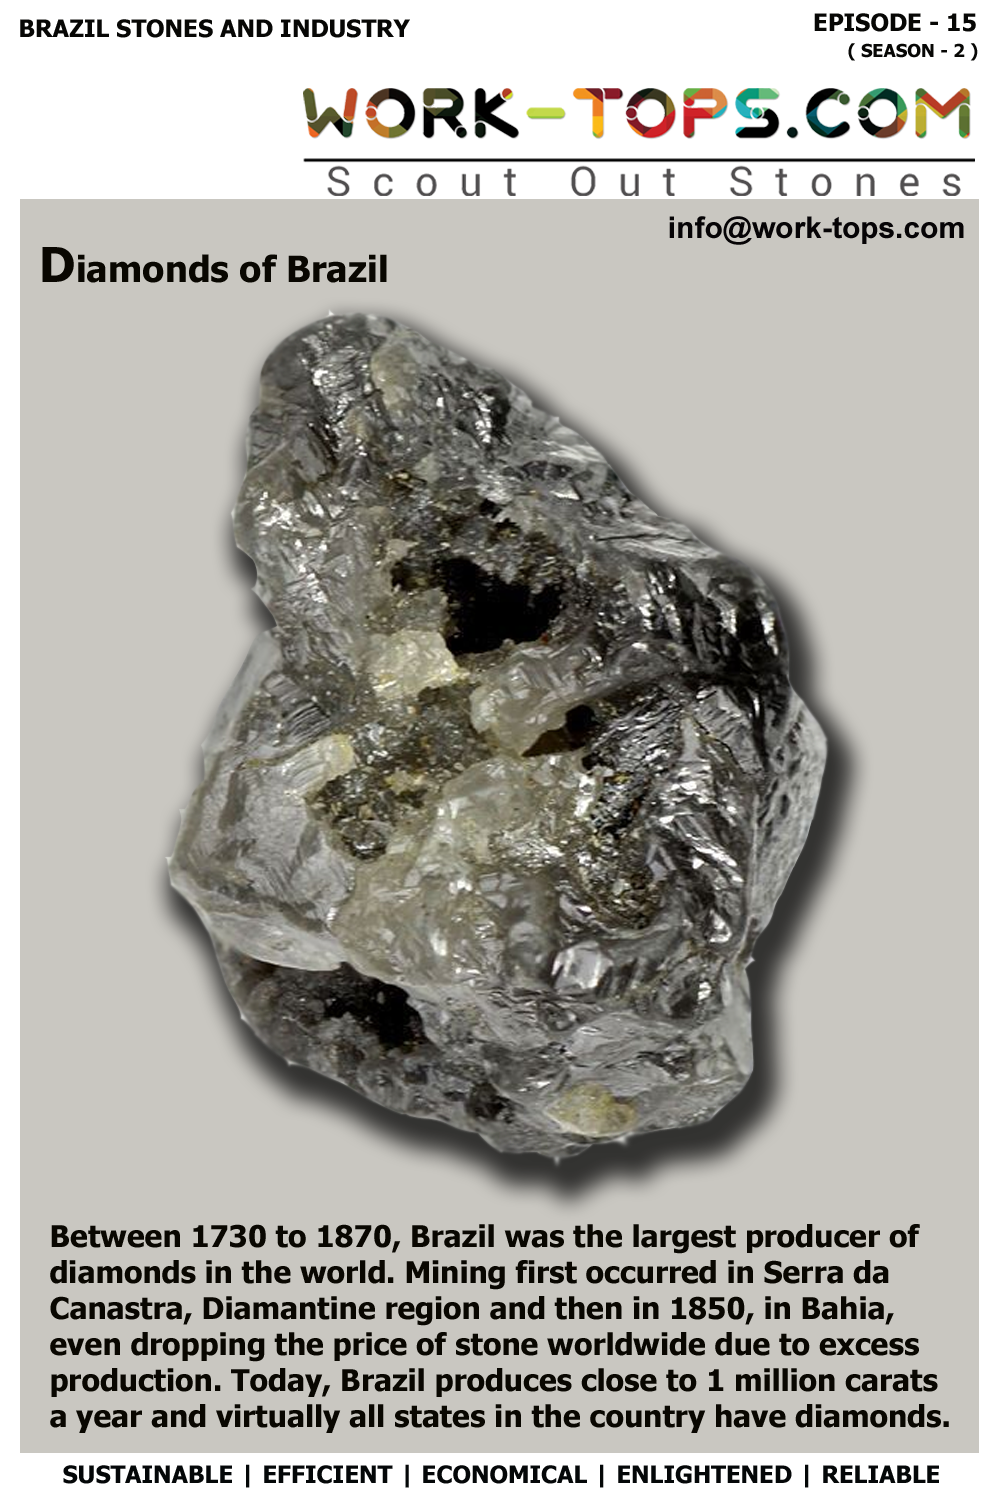 Brazil Stones And Industry Episode 15